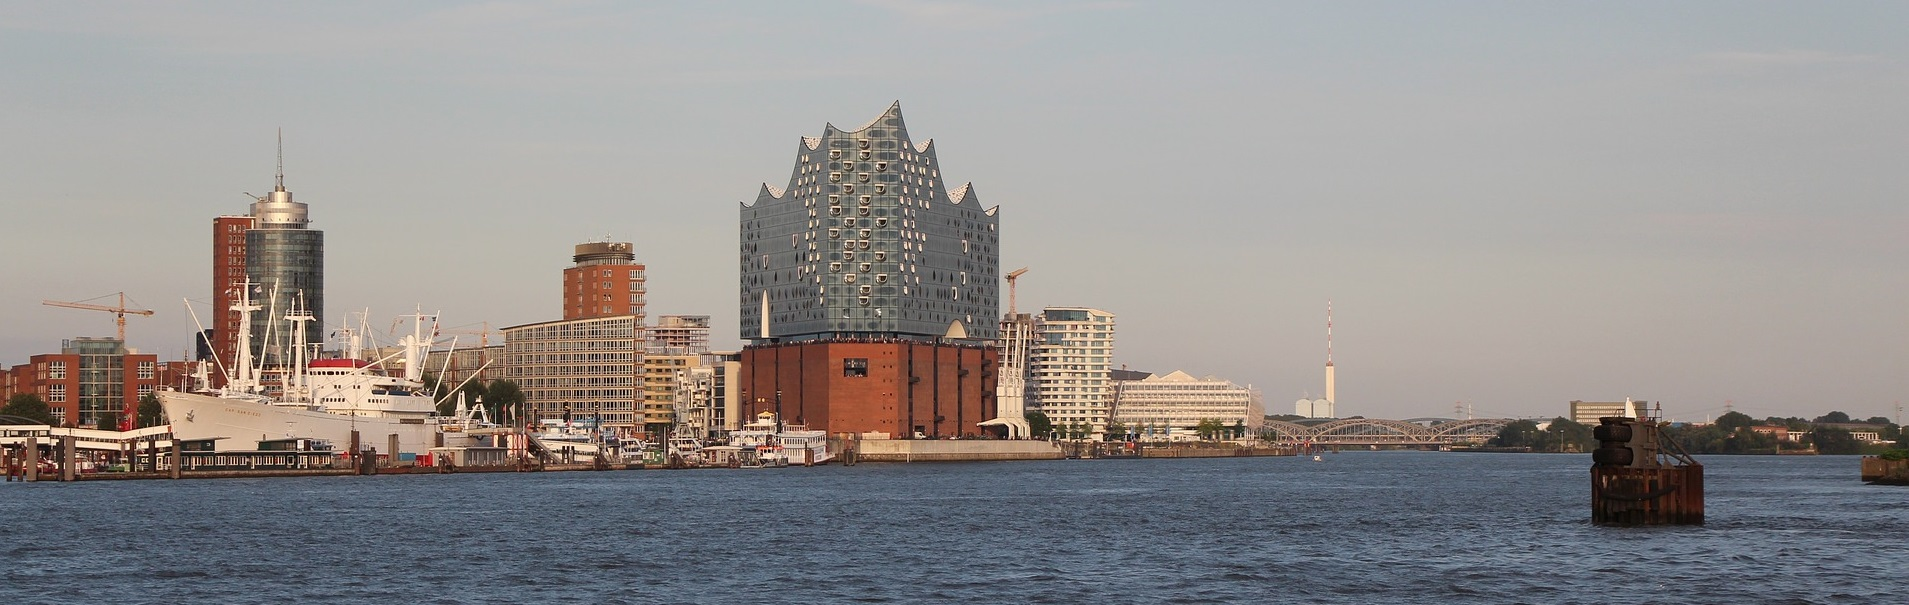 Elbphilharmonie image for Top Things To Do in Hamburg blog